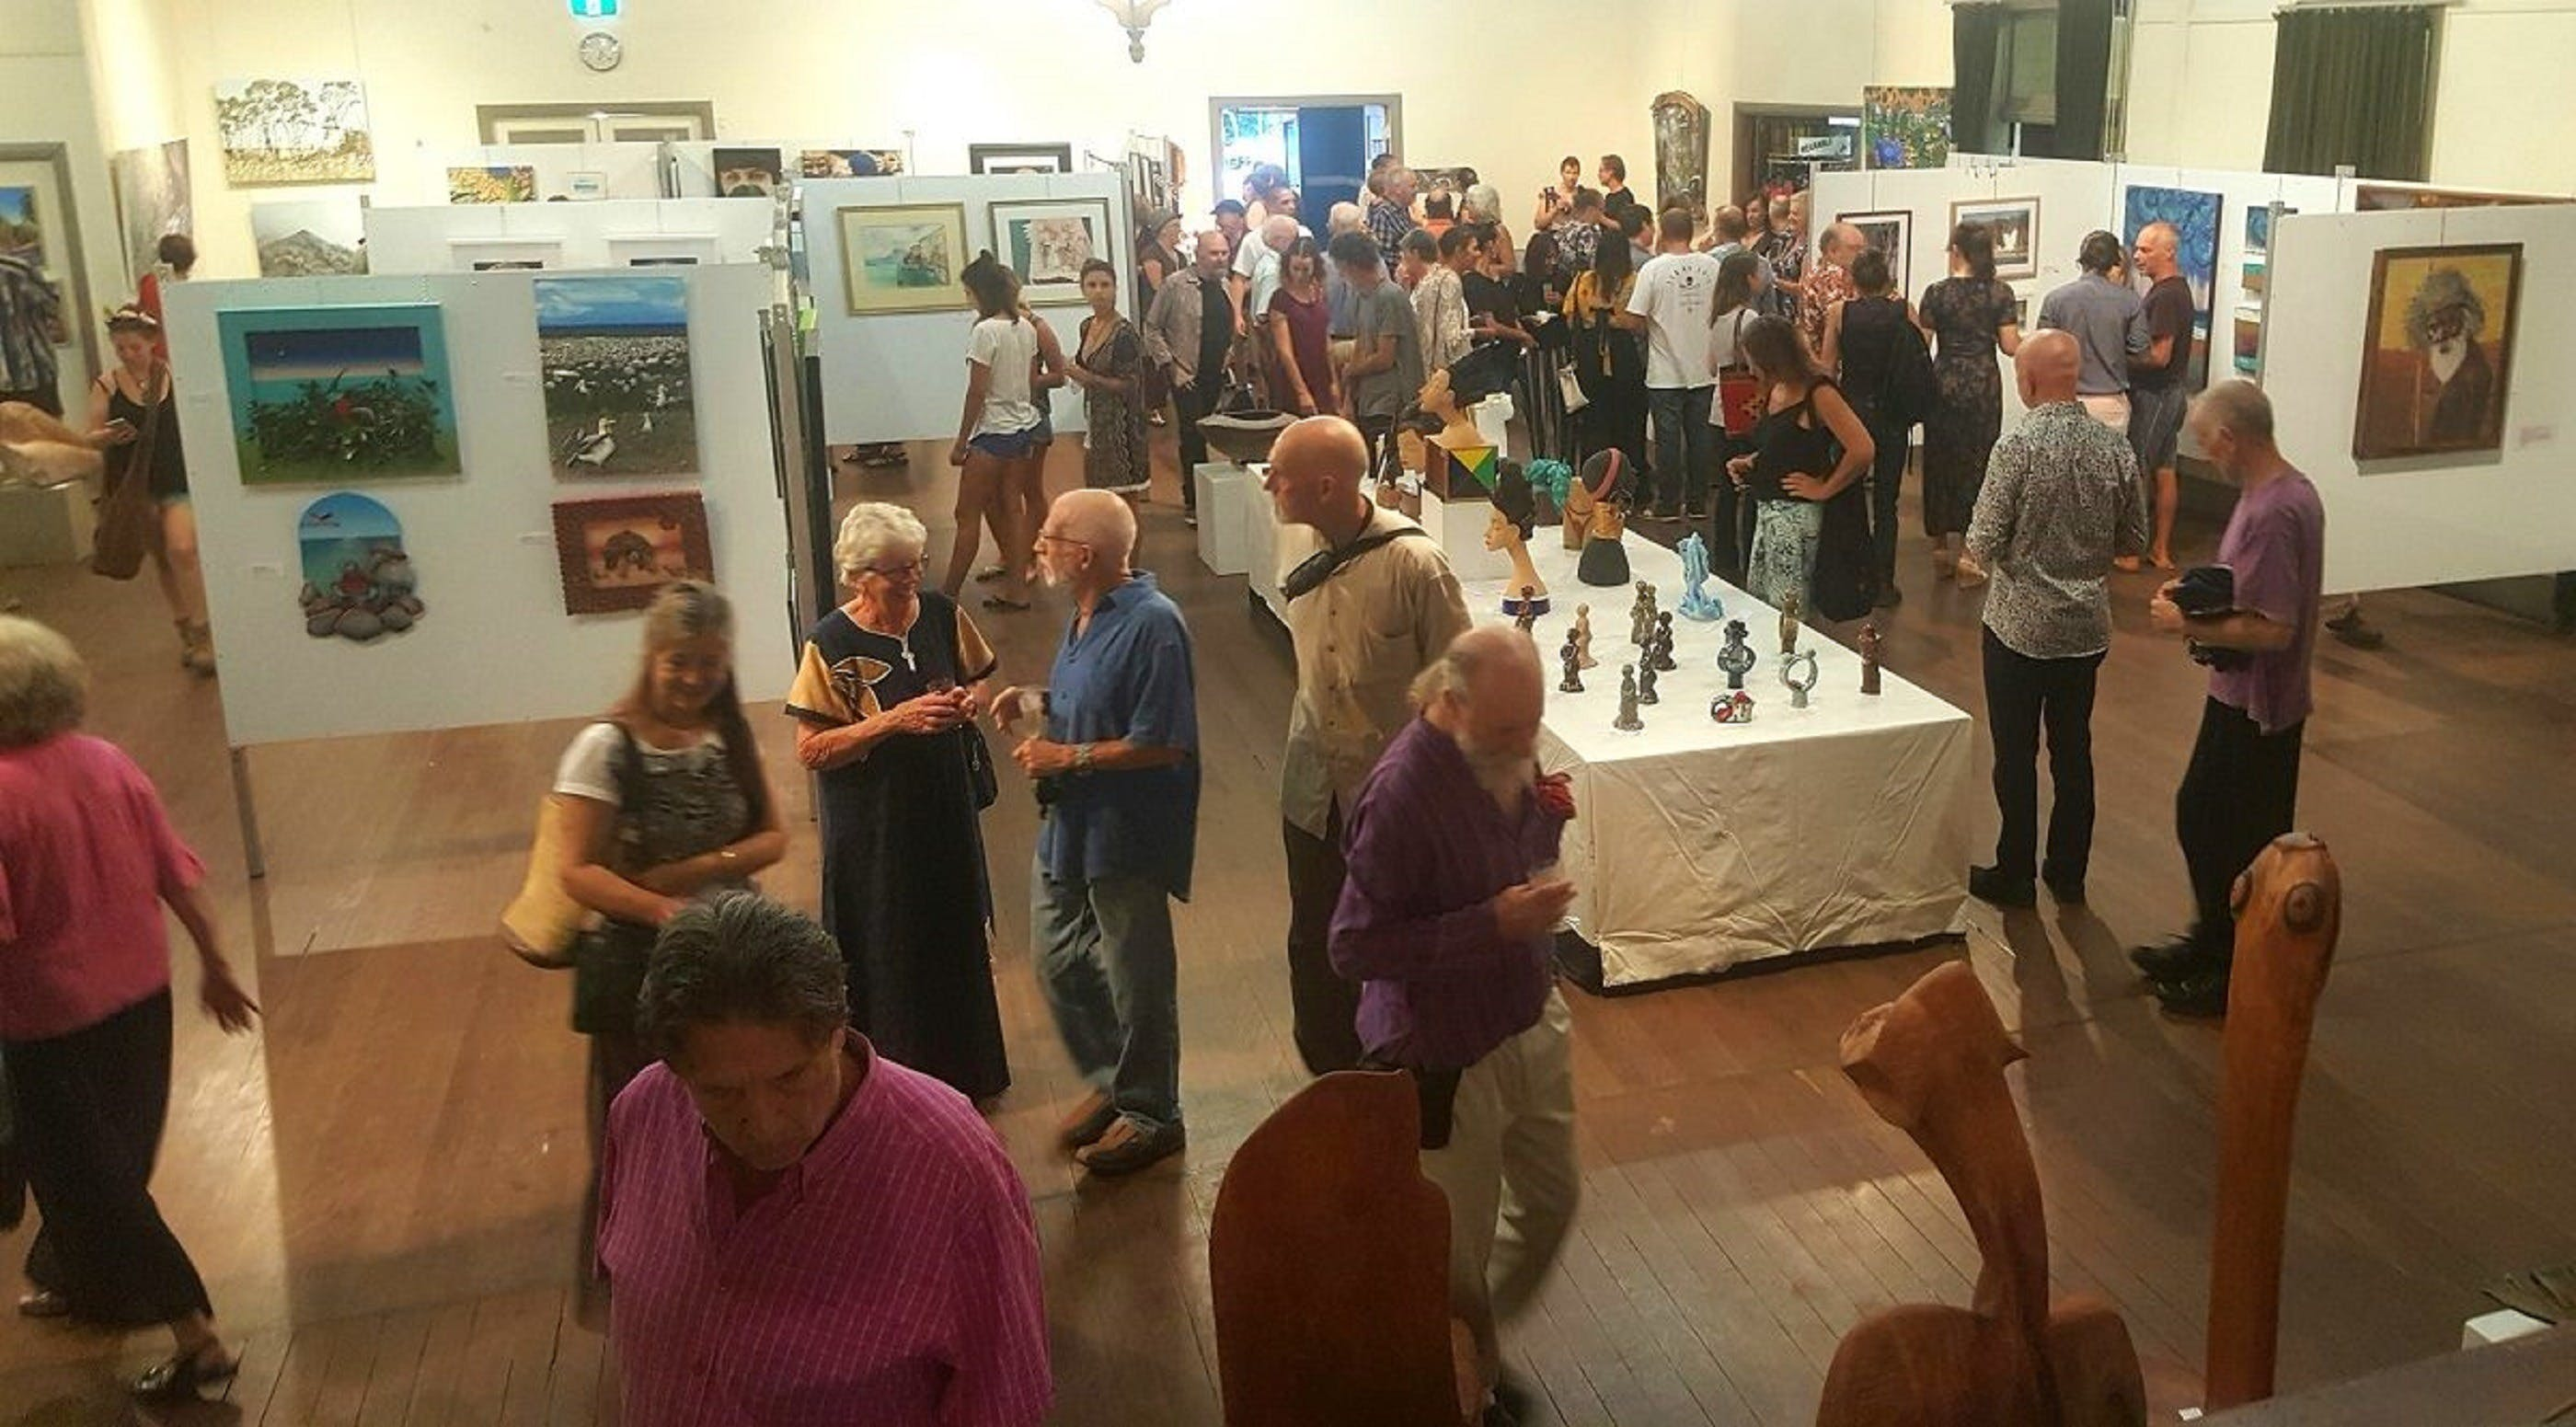 Nimbin Spring Arts Exhibition - Tourism Canberra